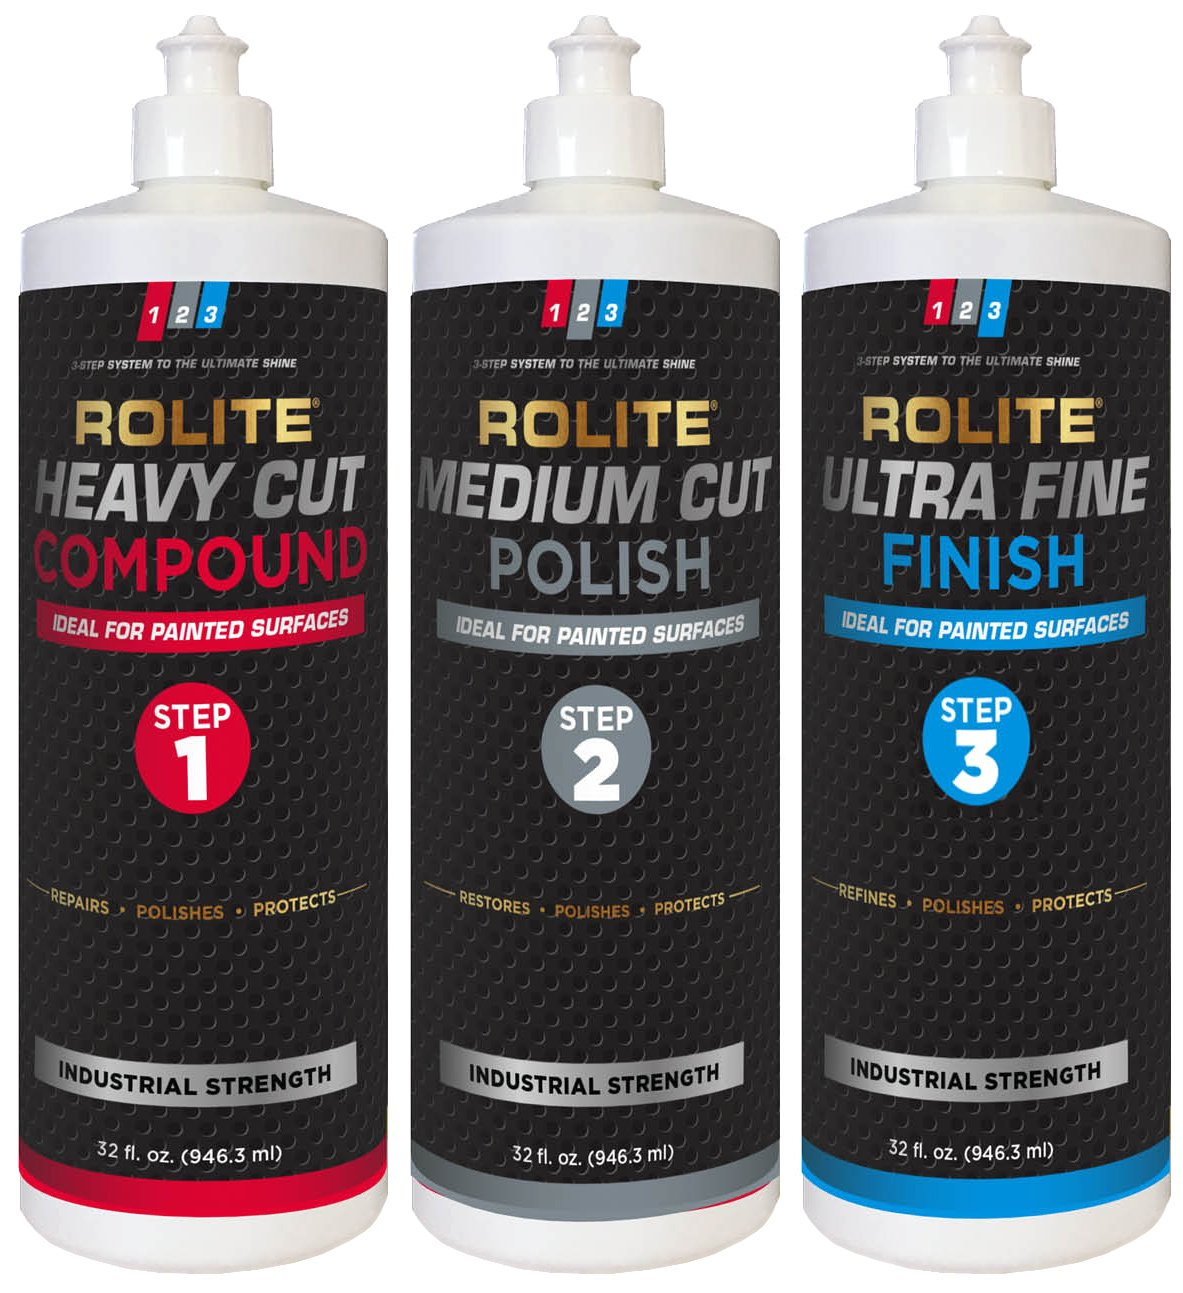 Rolite's 3 Step System to the Ultimate Shine (32 fl. oz.) with Heavy Cut Compound, Medium Cut Polish and Ultra Fine Finish Combo Pack